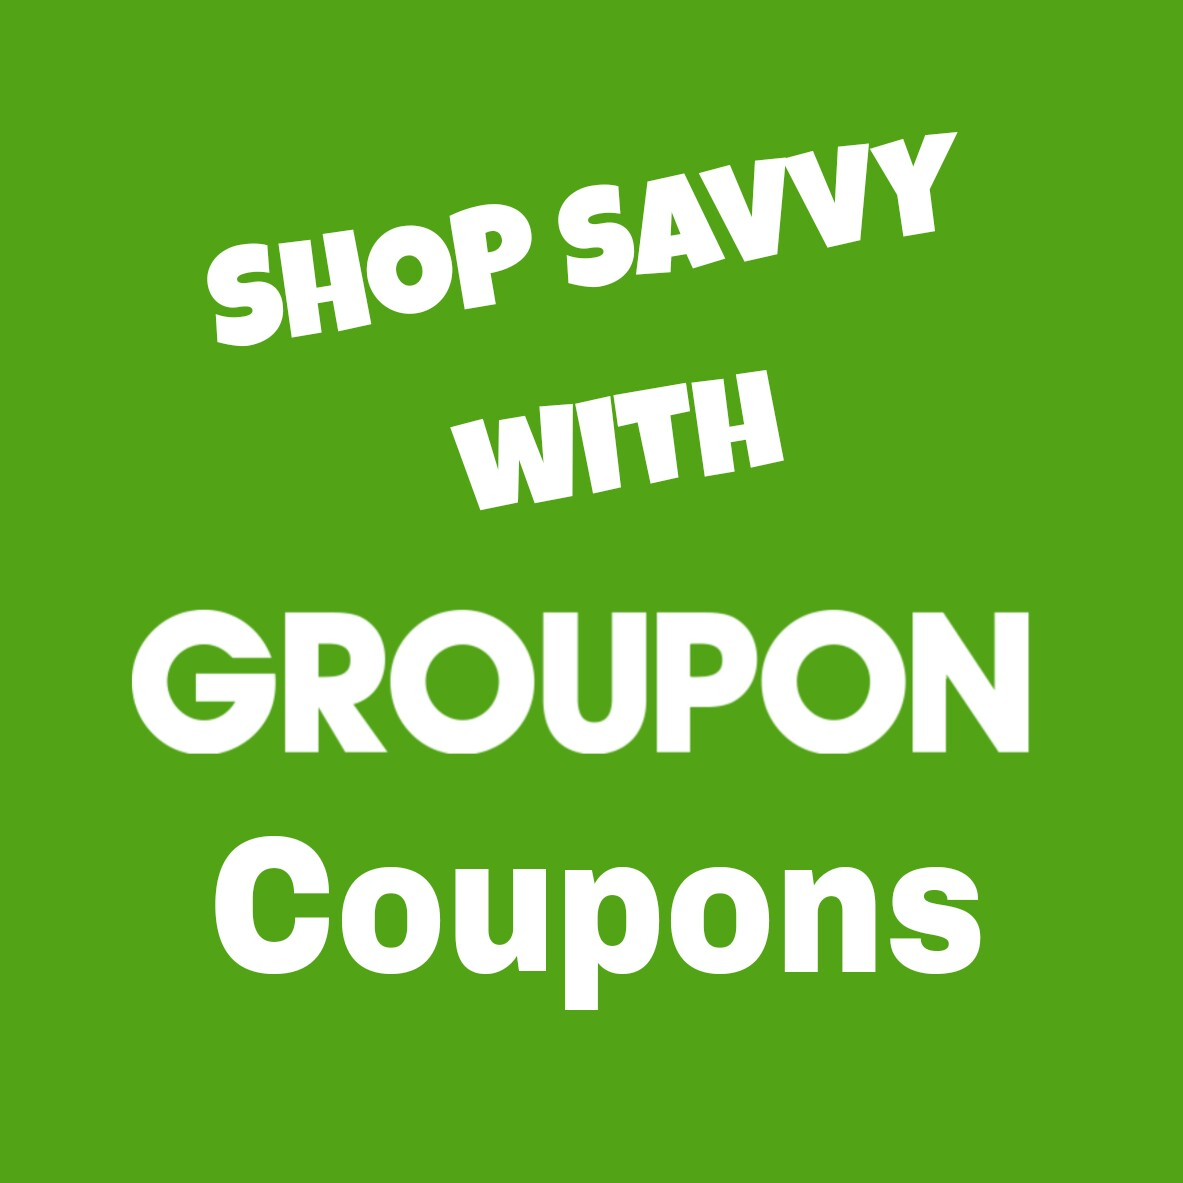 2a146ab057479 SHOP SAVVY WITH GROUPON COUPONS! - ColorSutraa